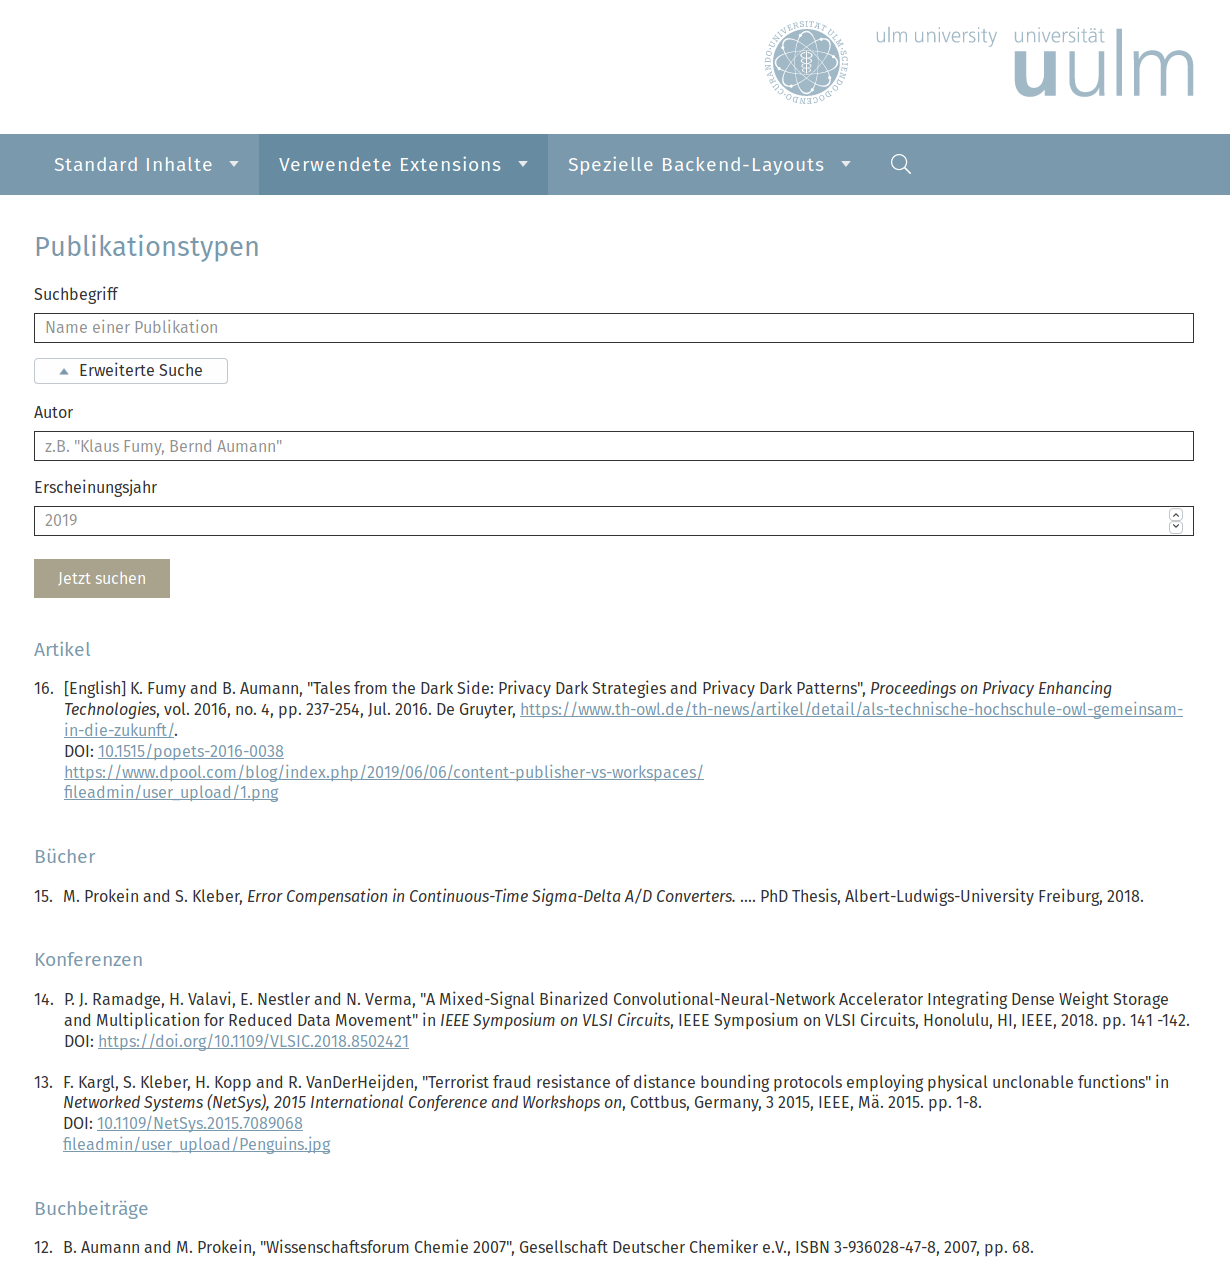 Example presentation on the website of University of Ulm